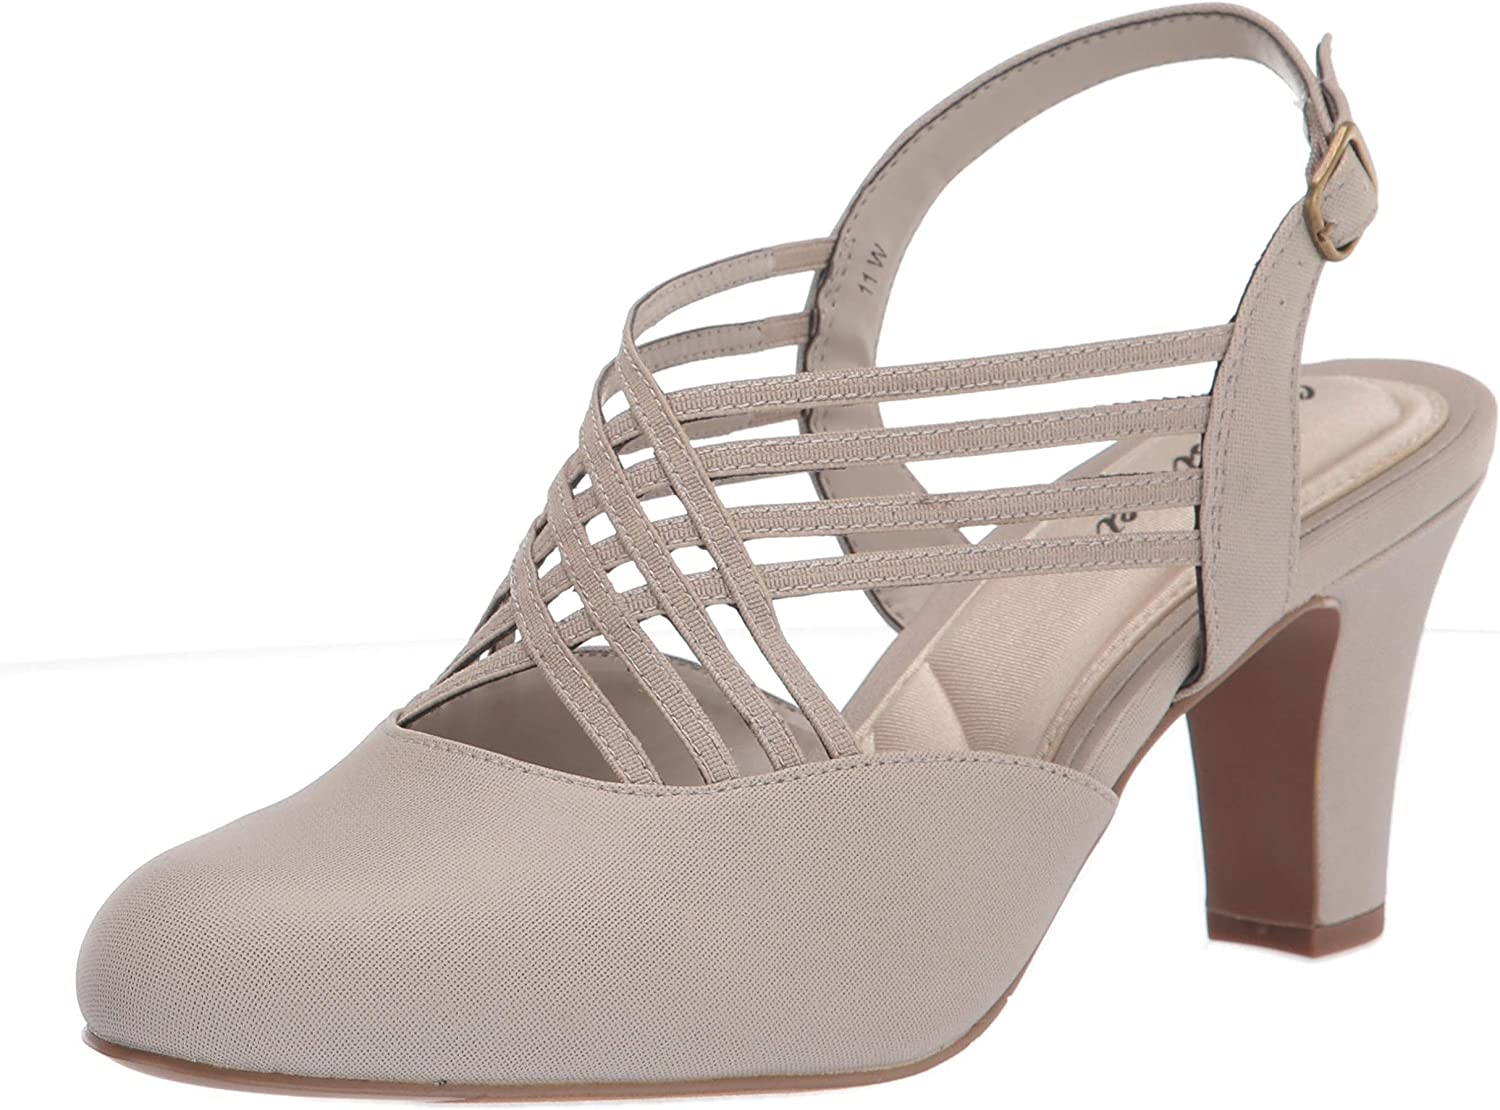 Easy-to-use Easy Street Women's Pump Max 85% OFF